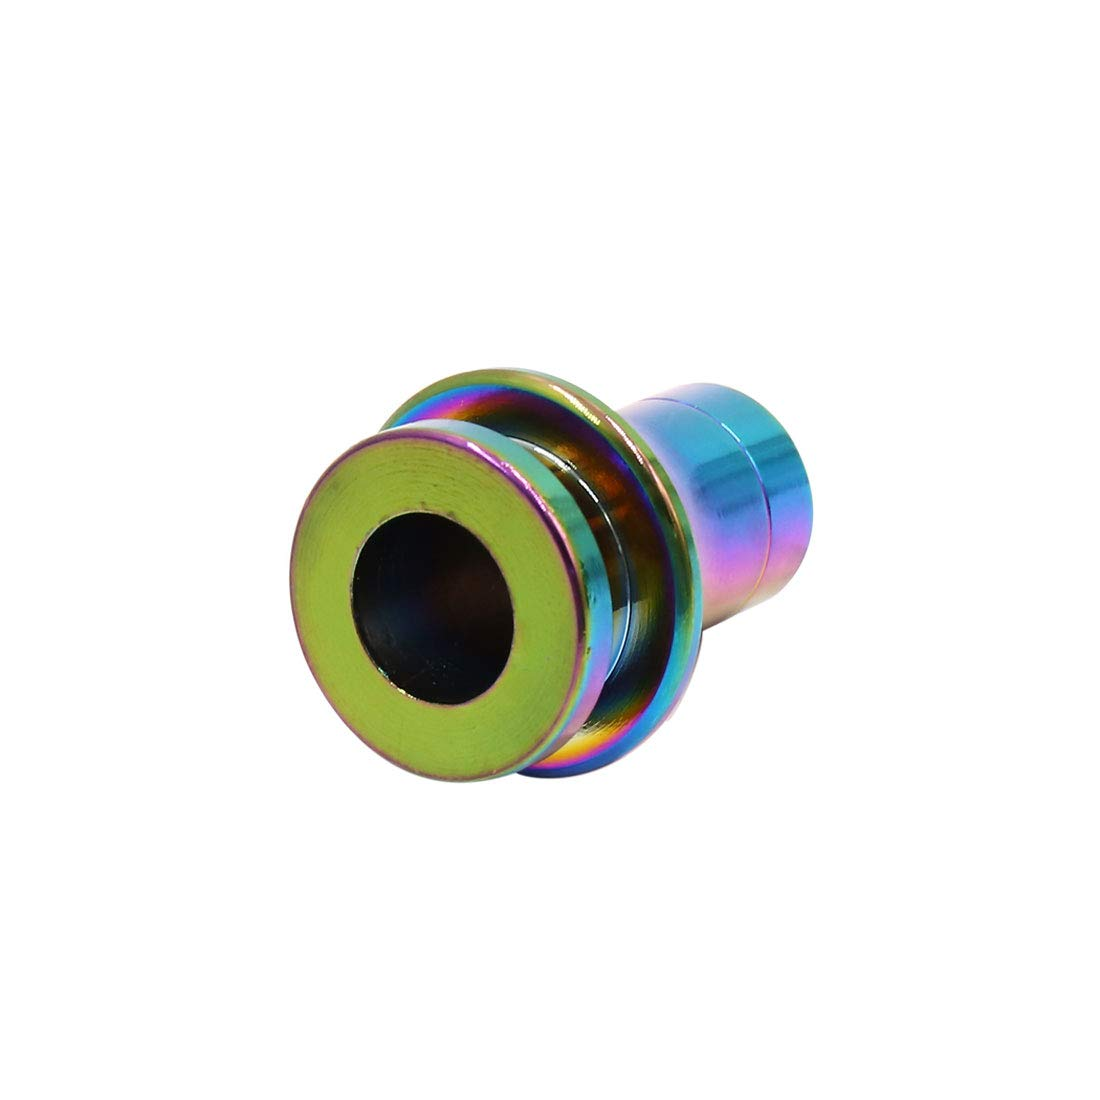 uxcell a18052500ux0432 M10 x 1.25mm Thread Colorful Car Manual Gear Lever Shift Knob Boot Retainer Adapter Unknown